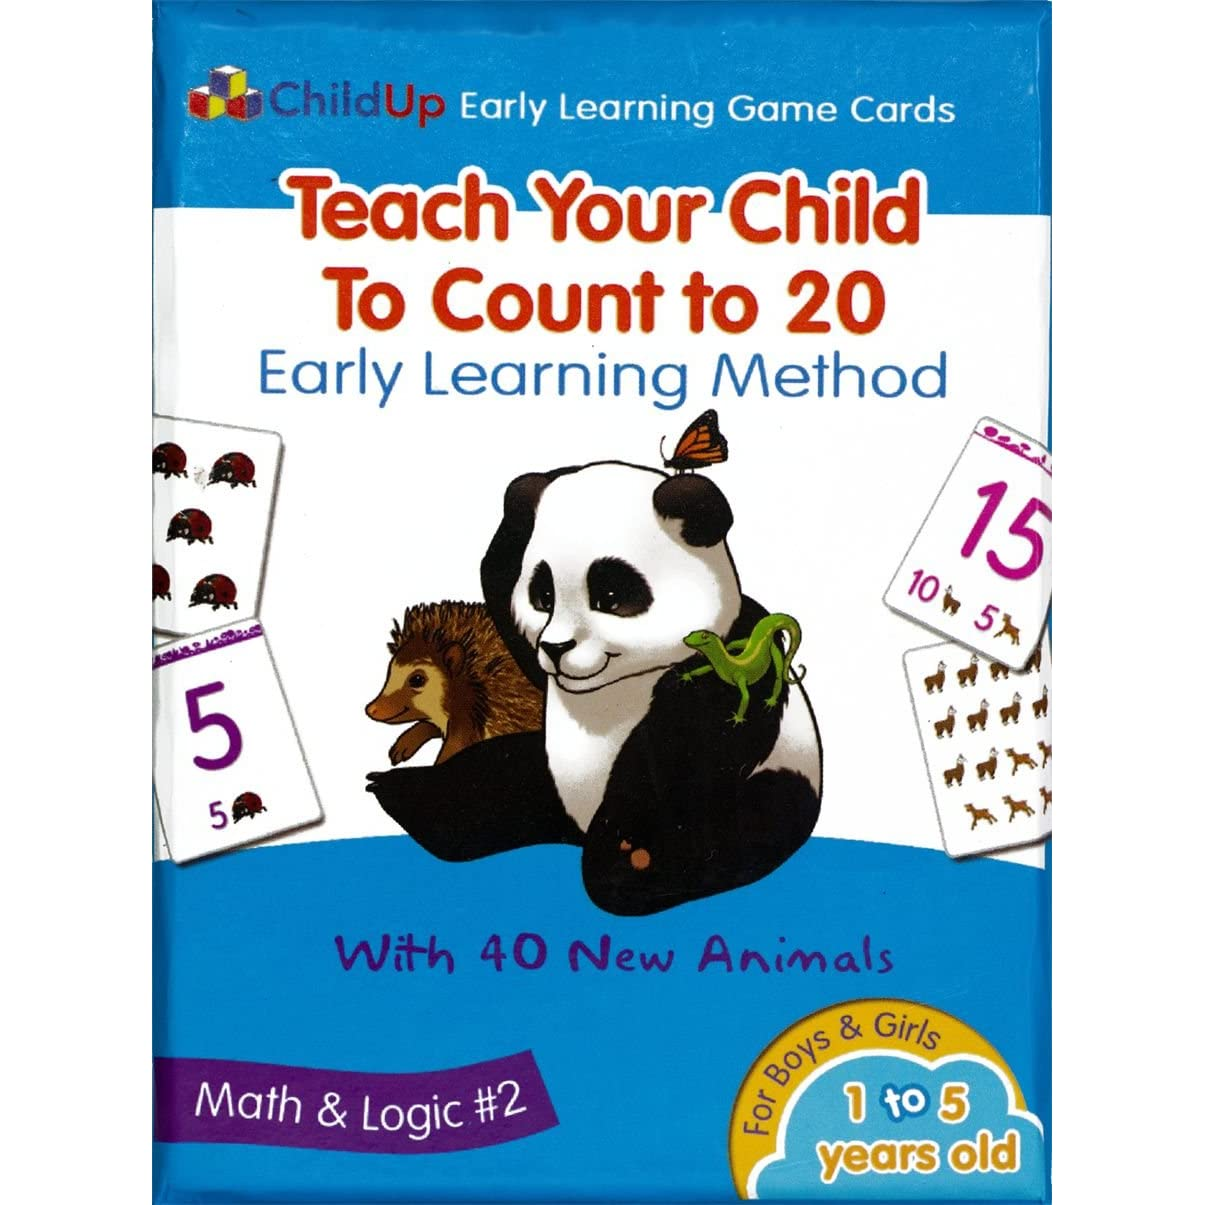 Early Learning: Dad Of Divas' Reviews: ChildUp Early Learning Game Cards